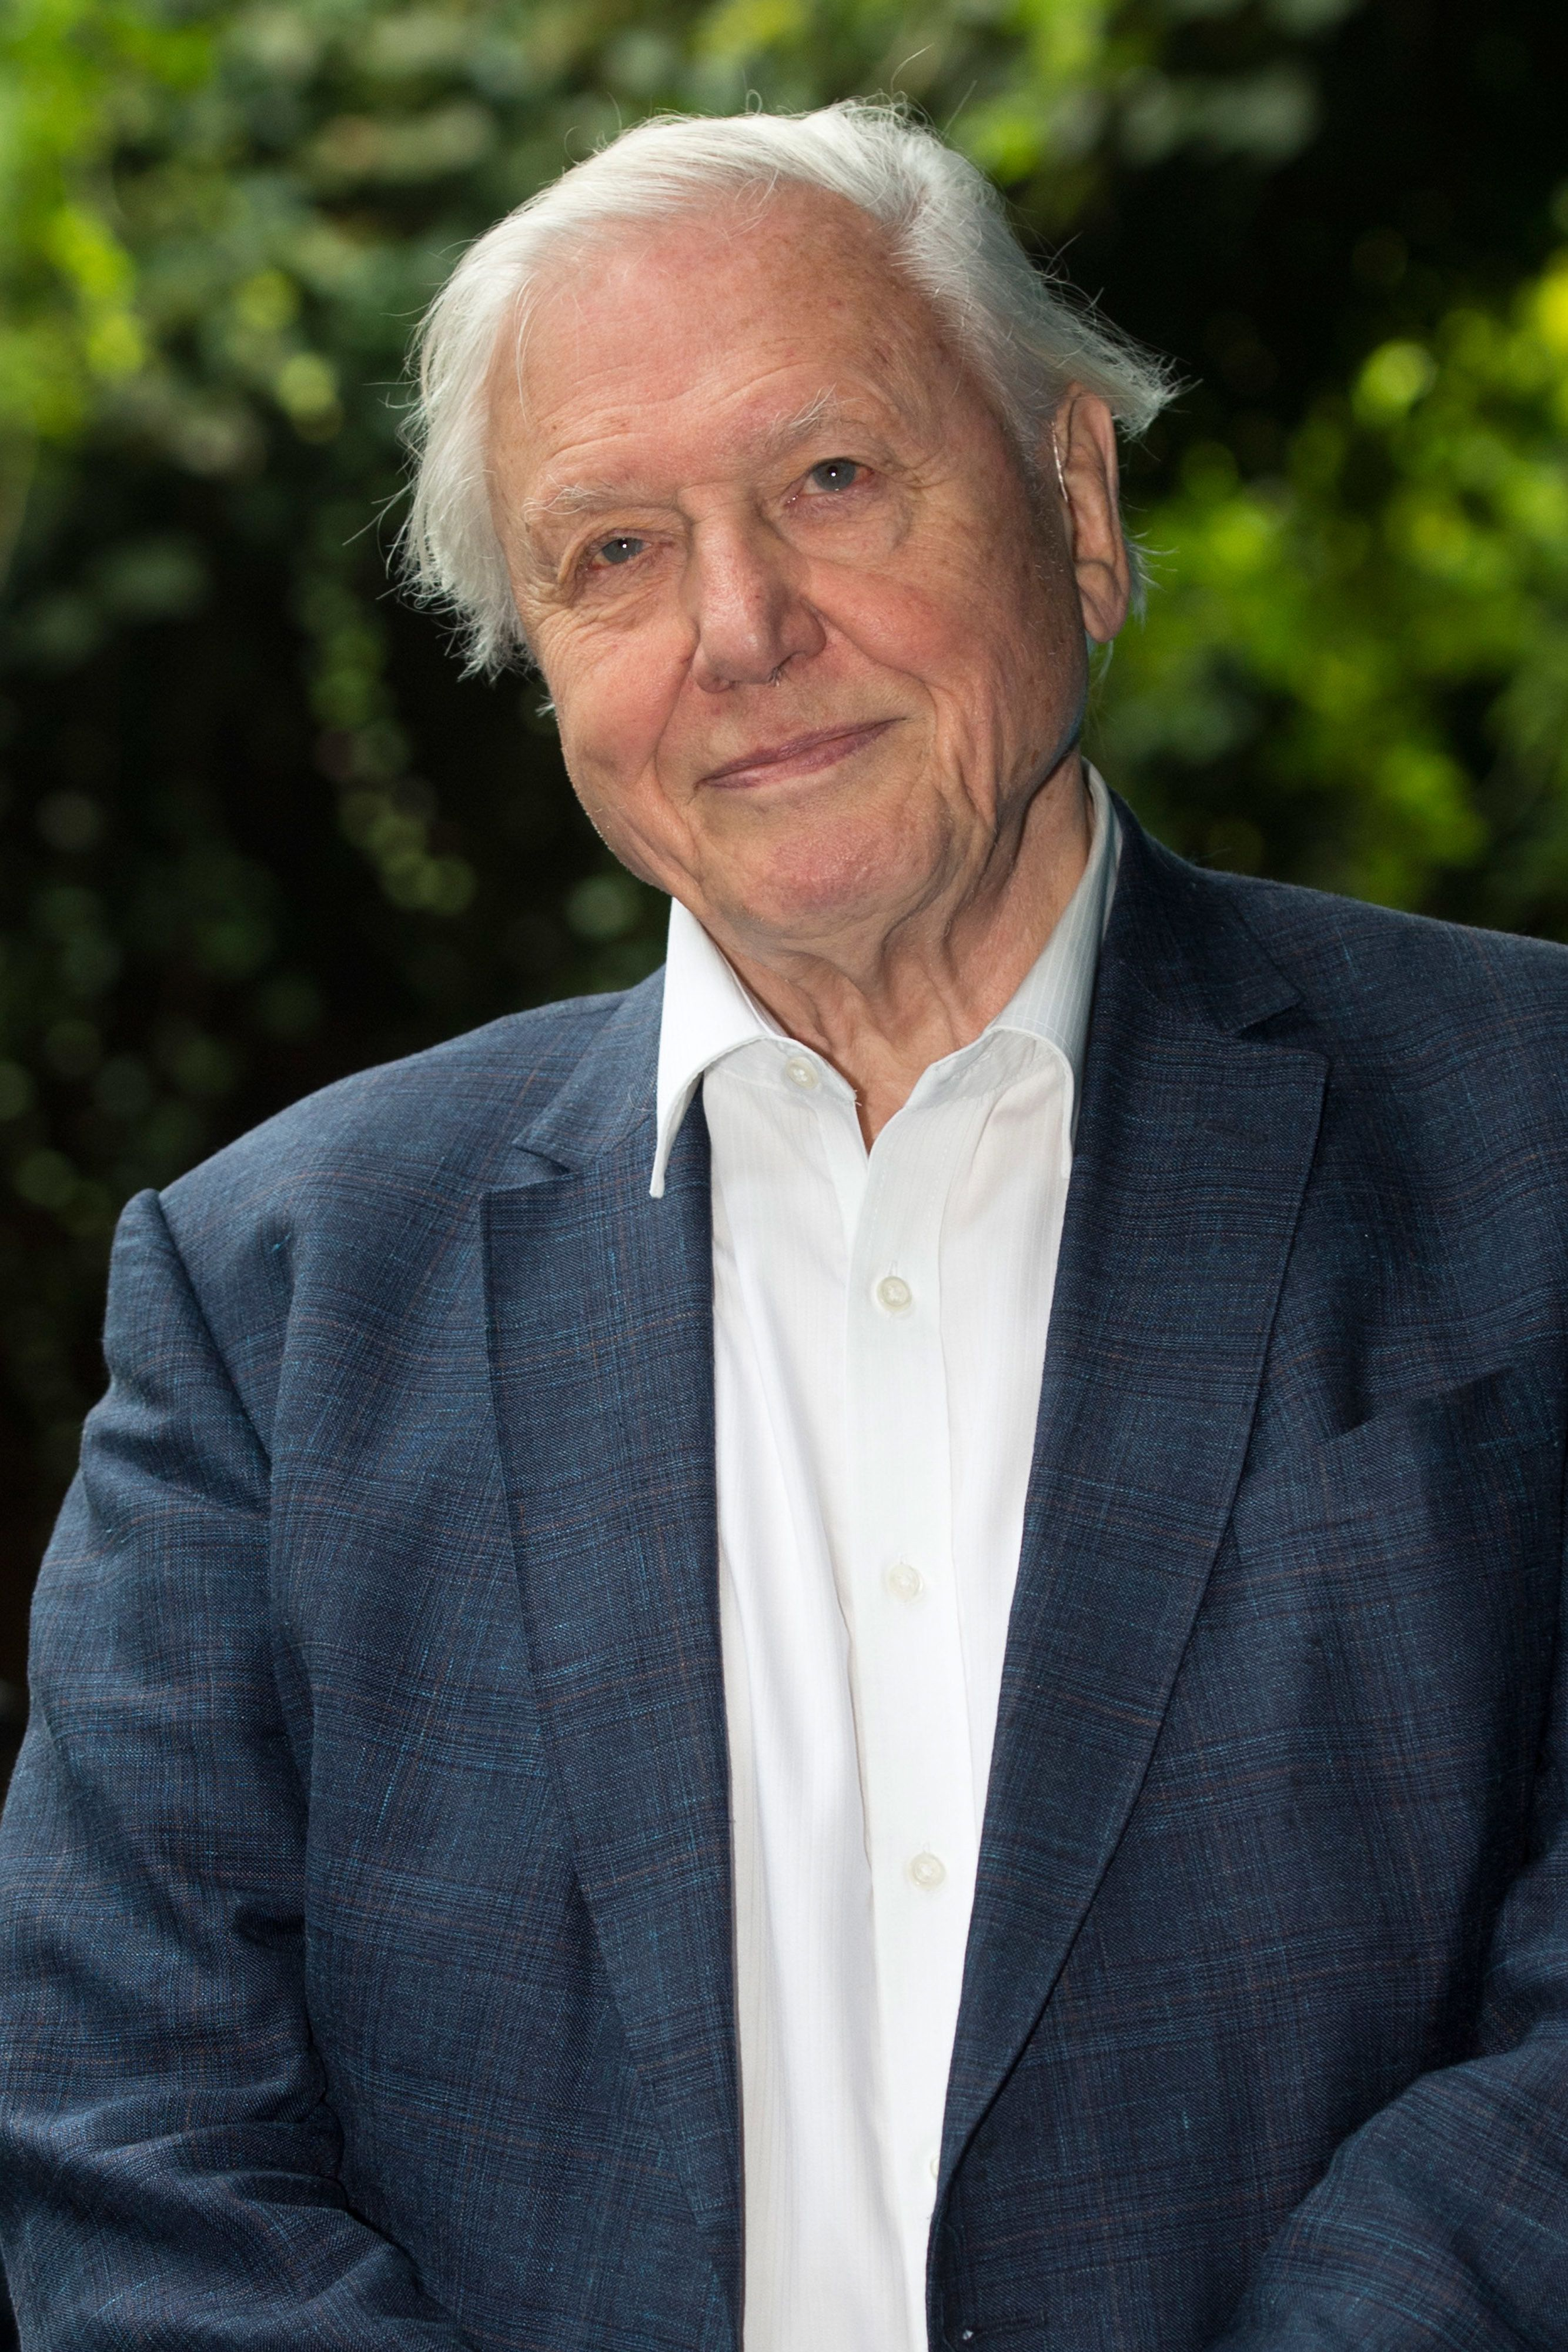 Sir David Attenborough Says Filming Some Scenes For 'Blue Planet II' Was 'A Tragic